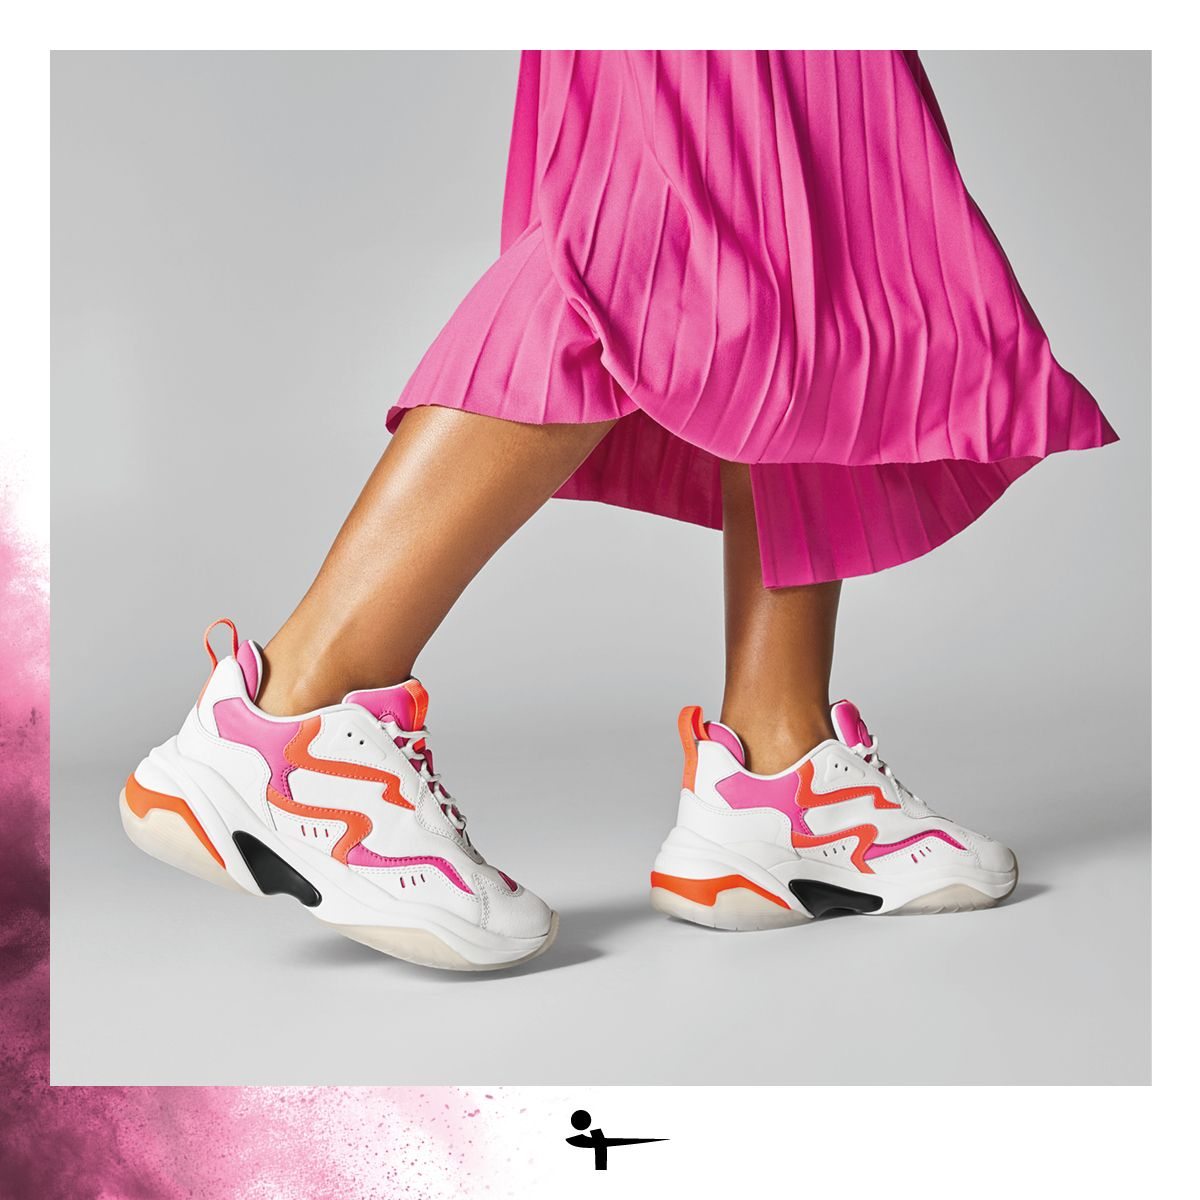 Bring back the 90's! in 2020   Sport chic, Athleisure, Sneaker